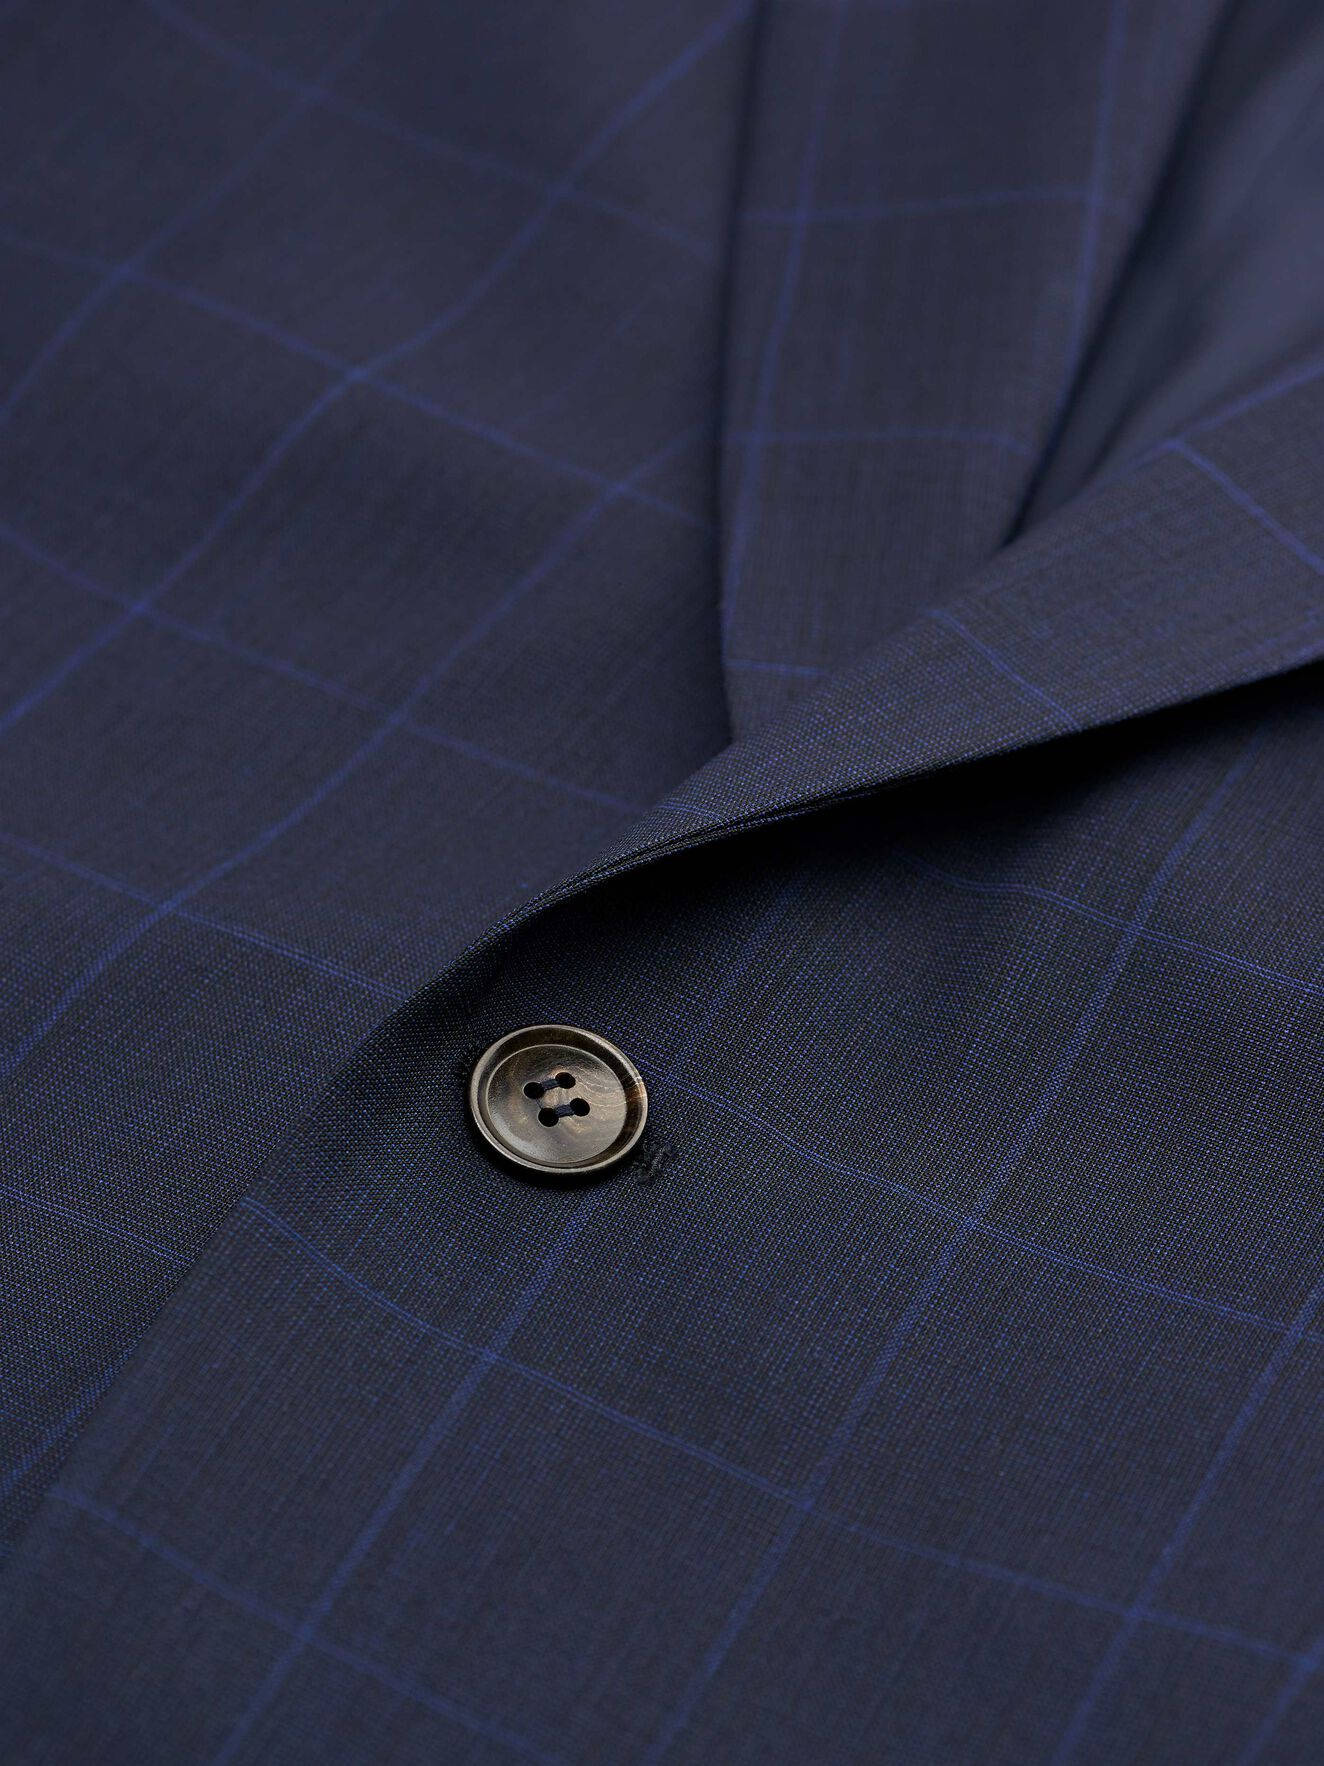 S.Jamonte Suit in Blue function from Tiger of Sweden